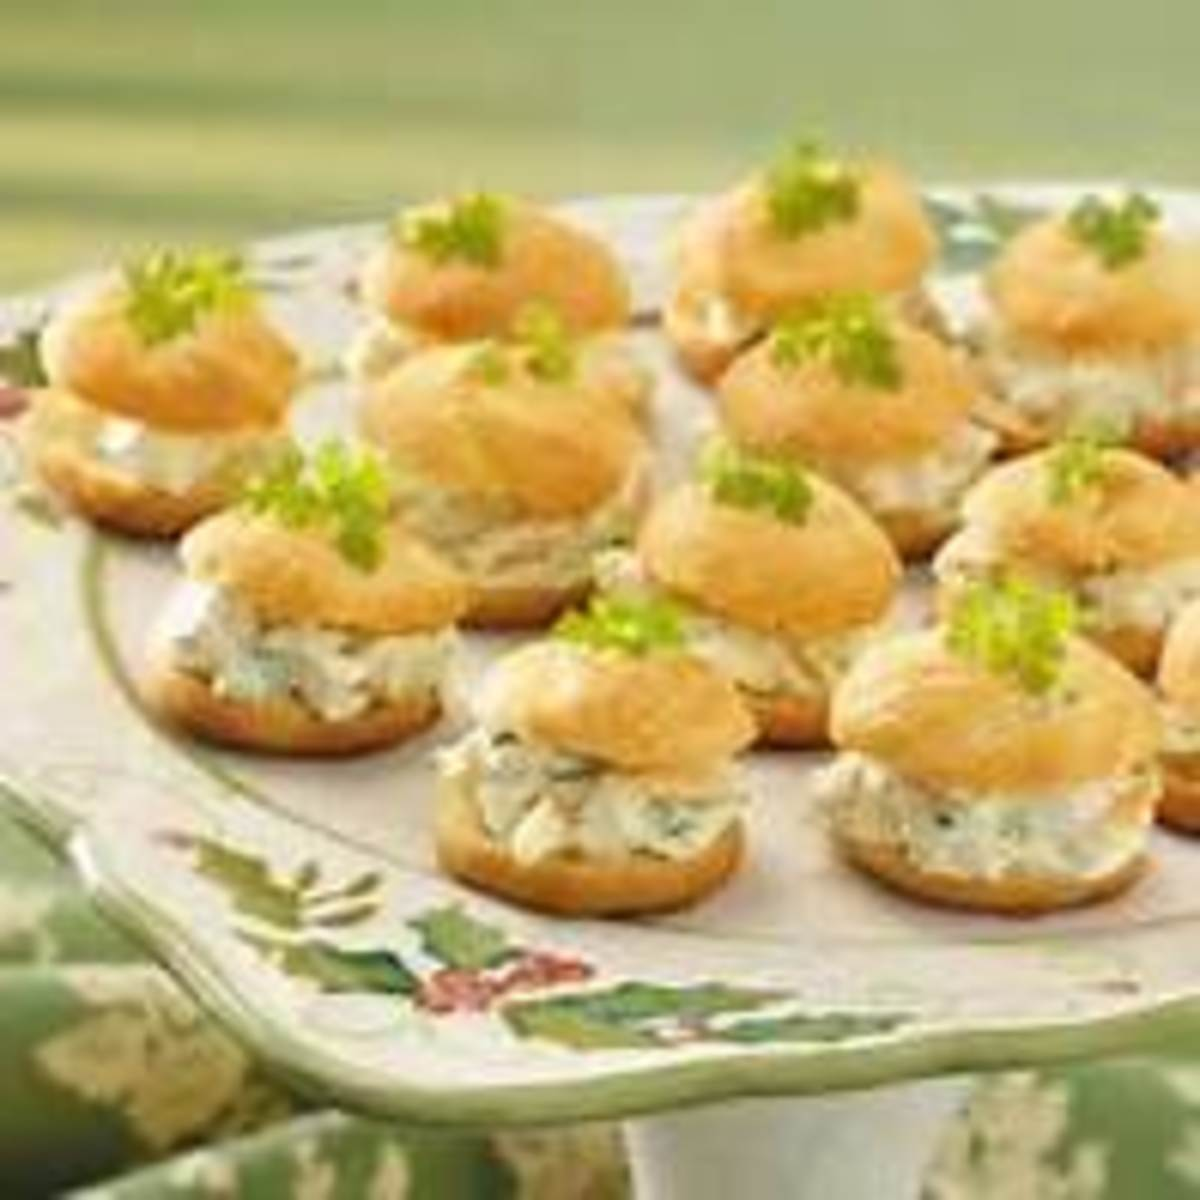 Cream puffs with tuna salad